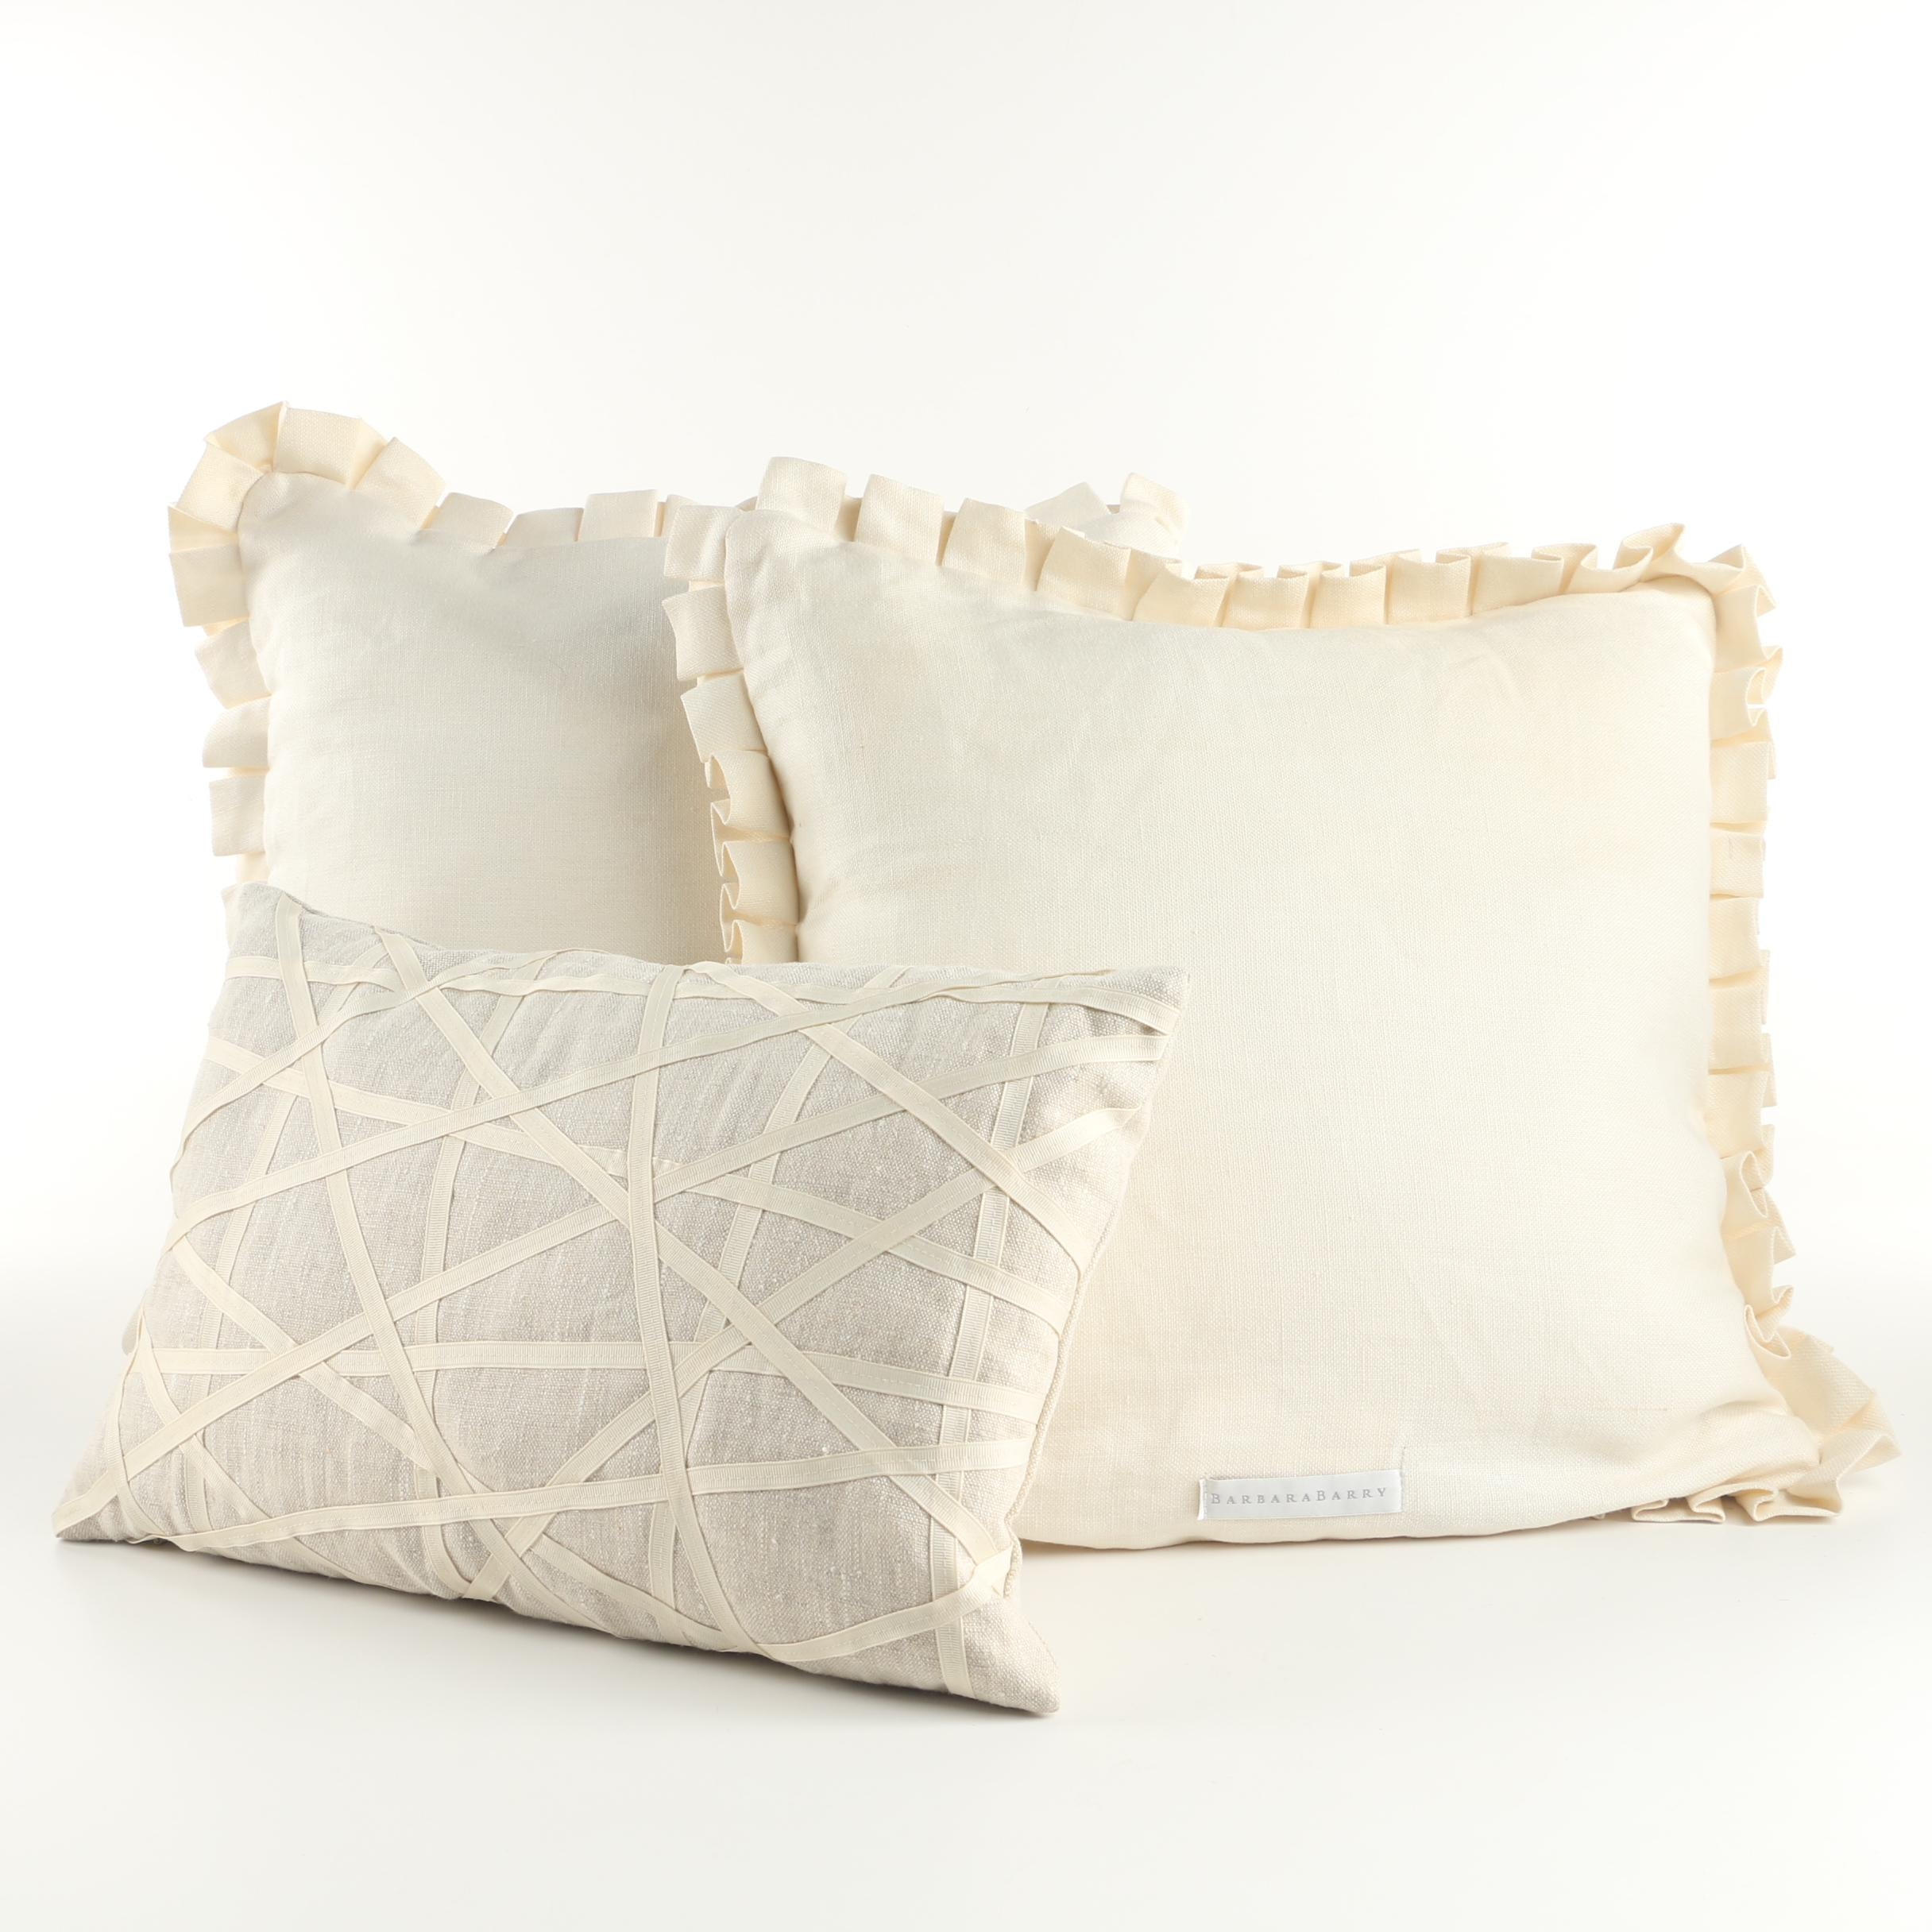 Barbara Barry Embellished Throw Pillows